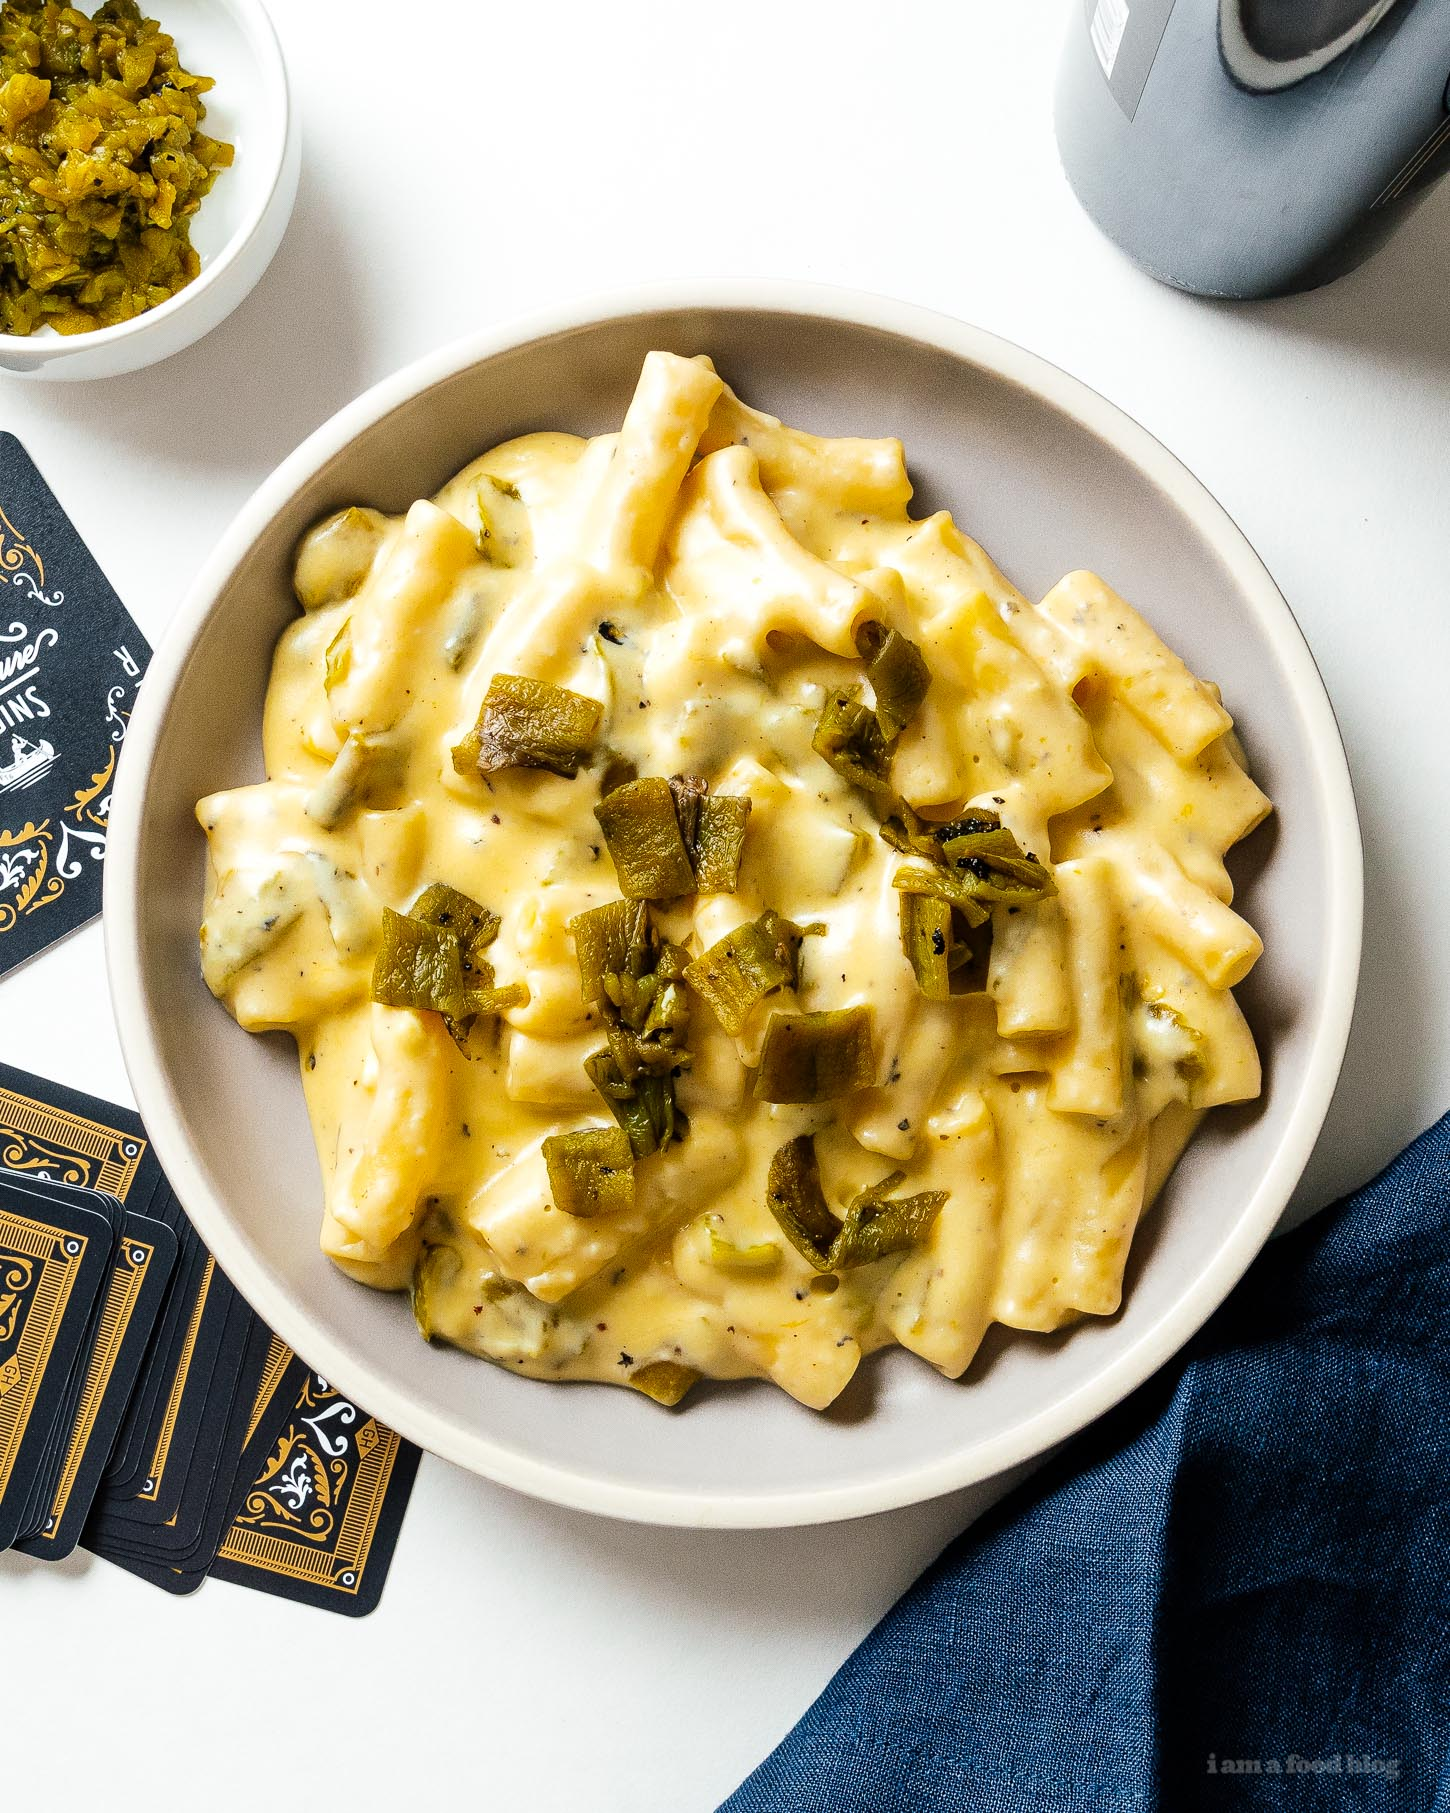 Creamy, spicy, comforting hatch green chile mac and cheese. Perfect for warming you up the coming fall days. #macandcheese #dinner #dinnerrecipes #cheese #comfort #comfortfood #hatchchile #greenchile